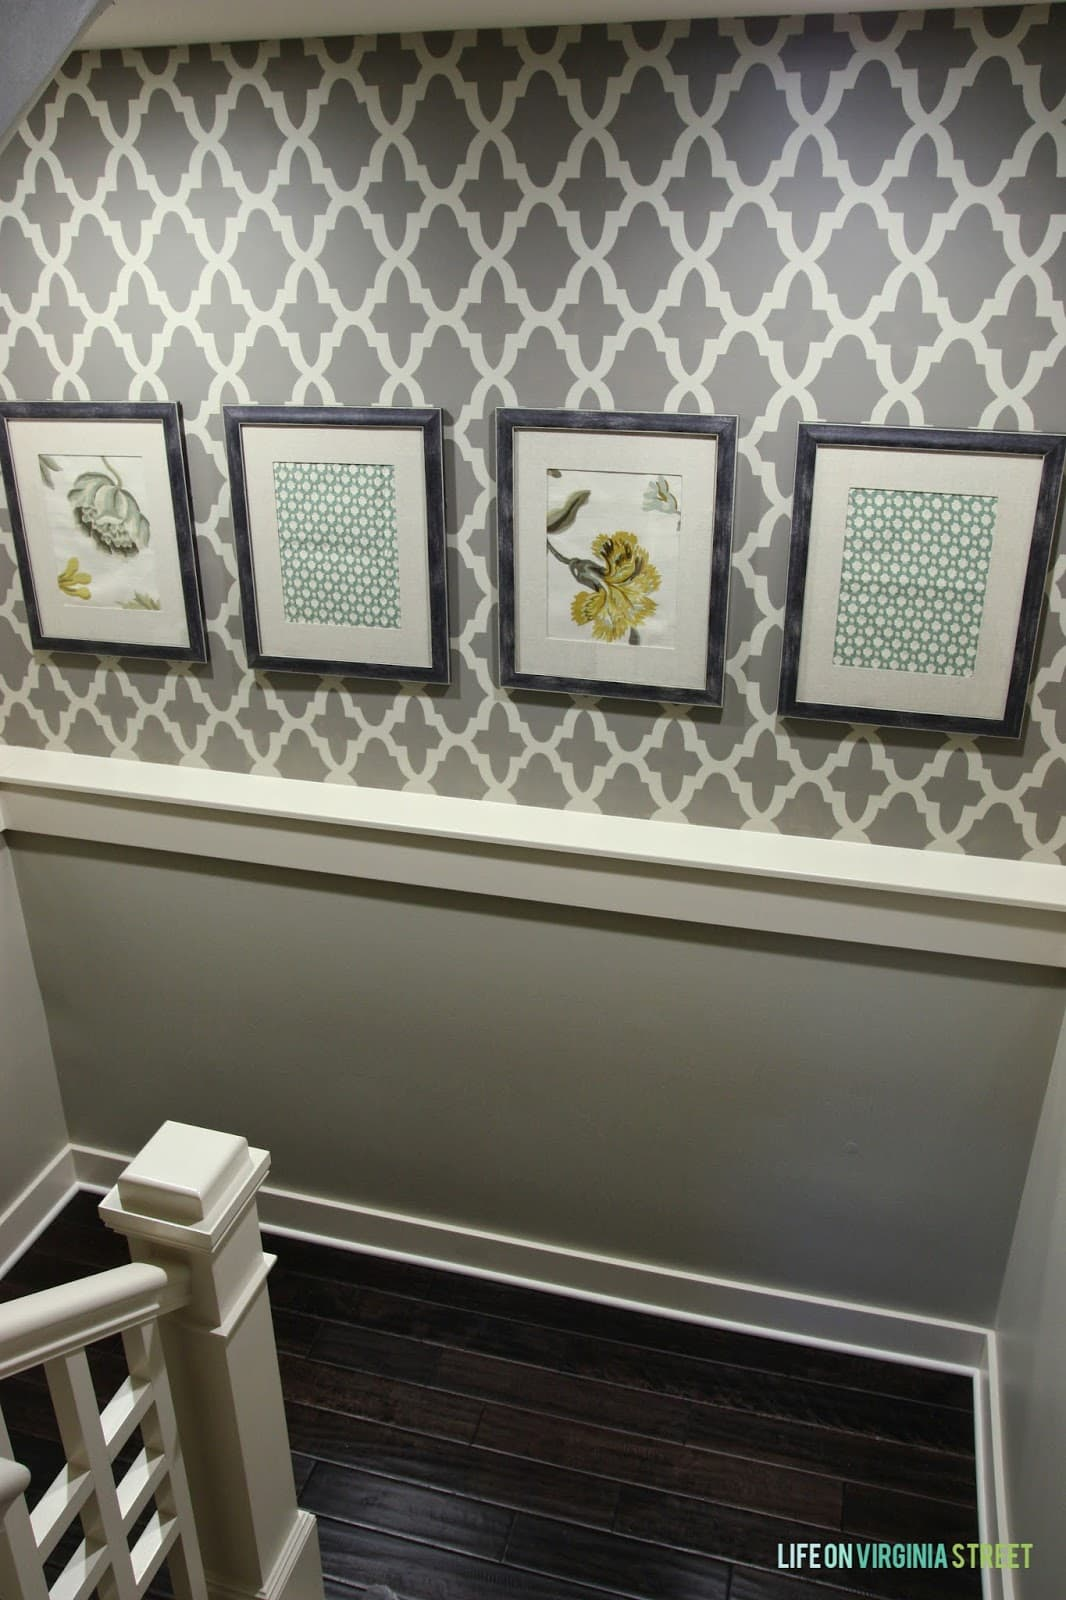 A staircase that has been stencilled with pictures hanging on the wall.